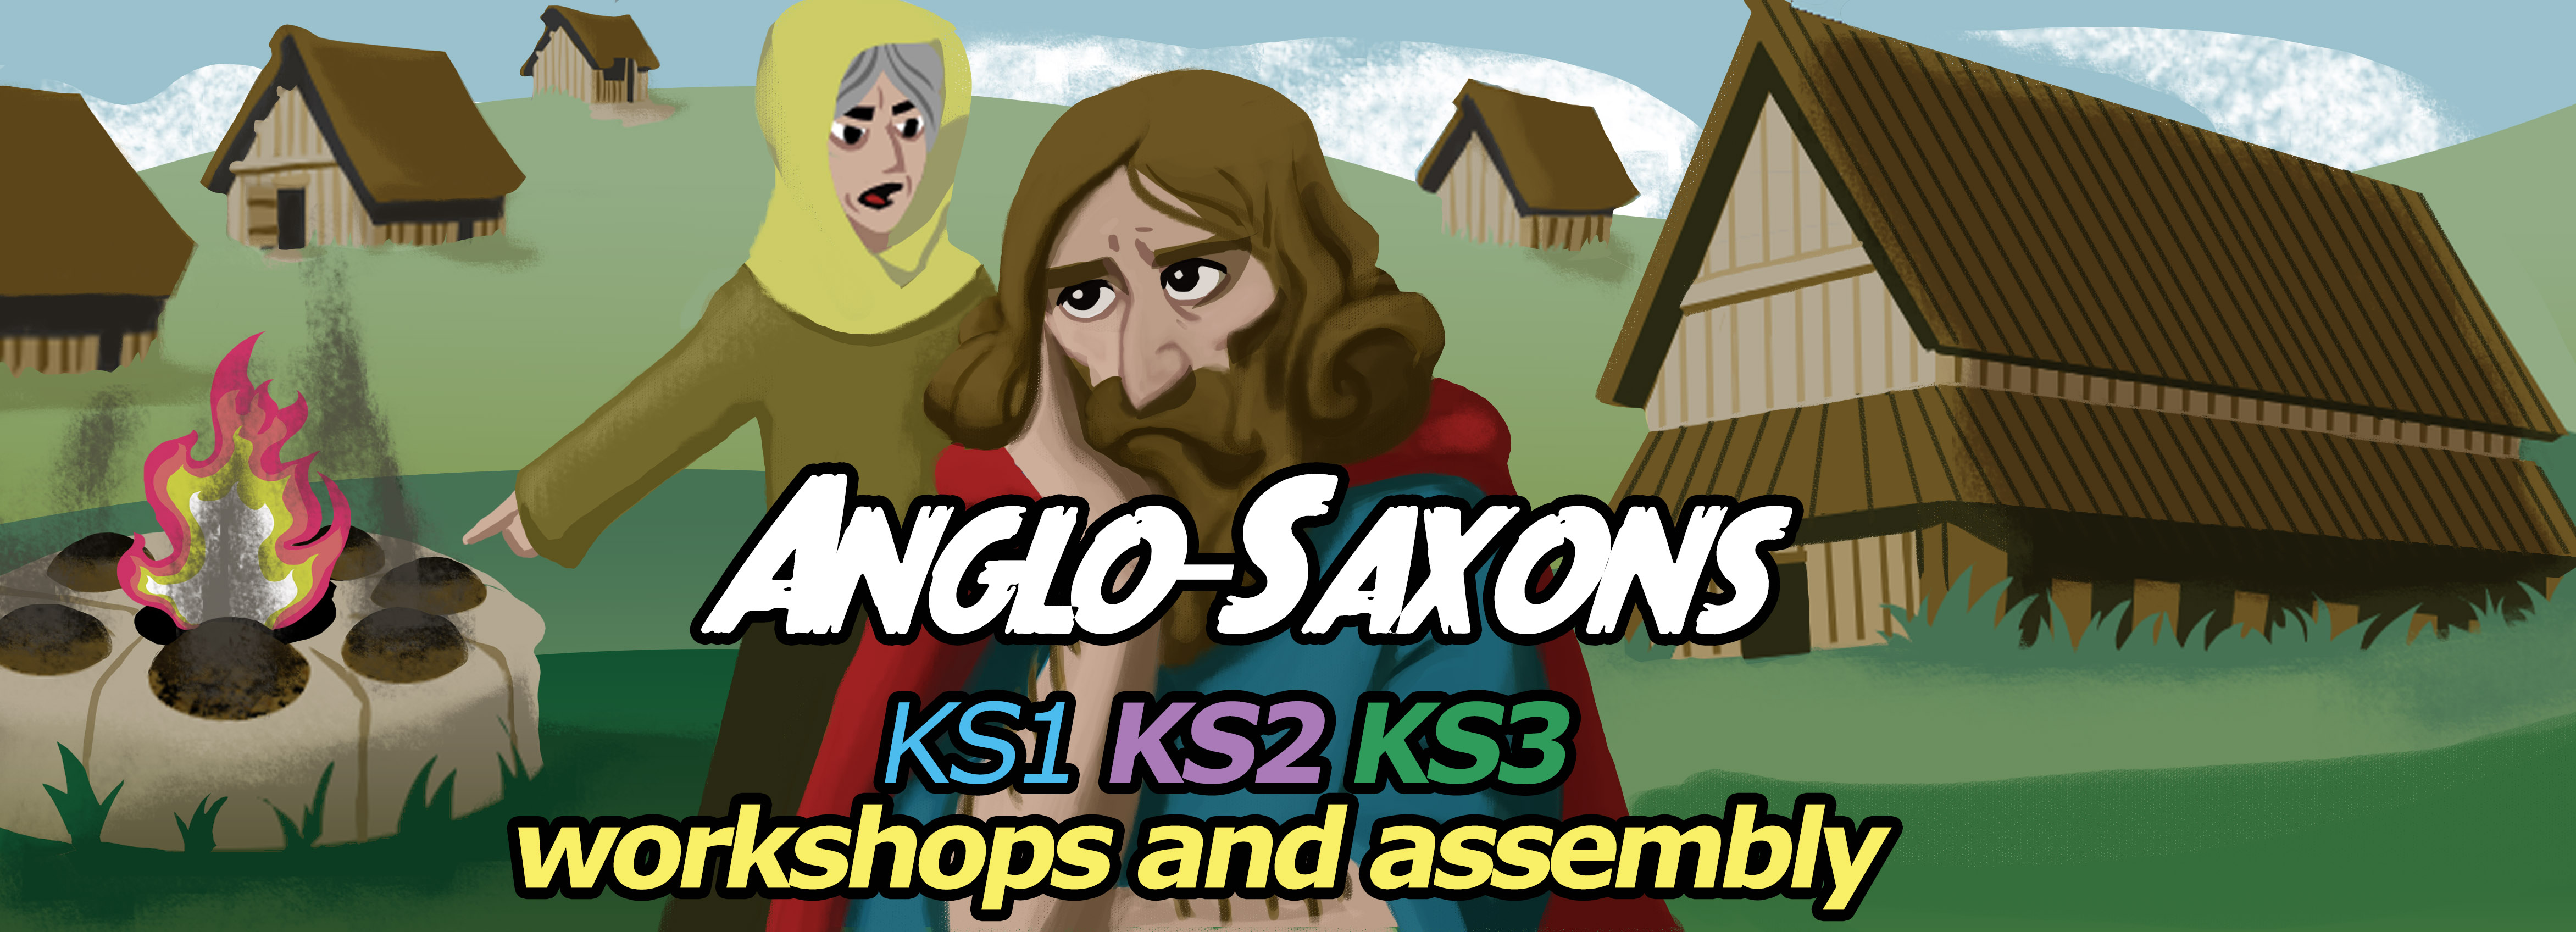 Anglo Saxon workshop